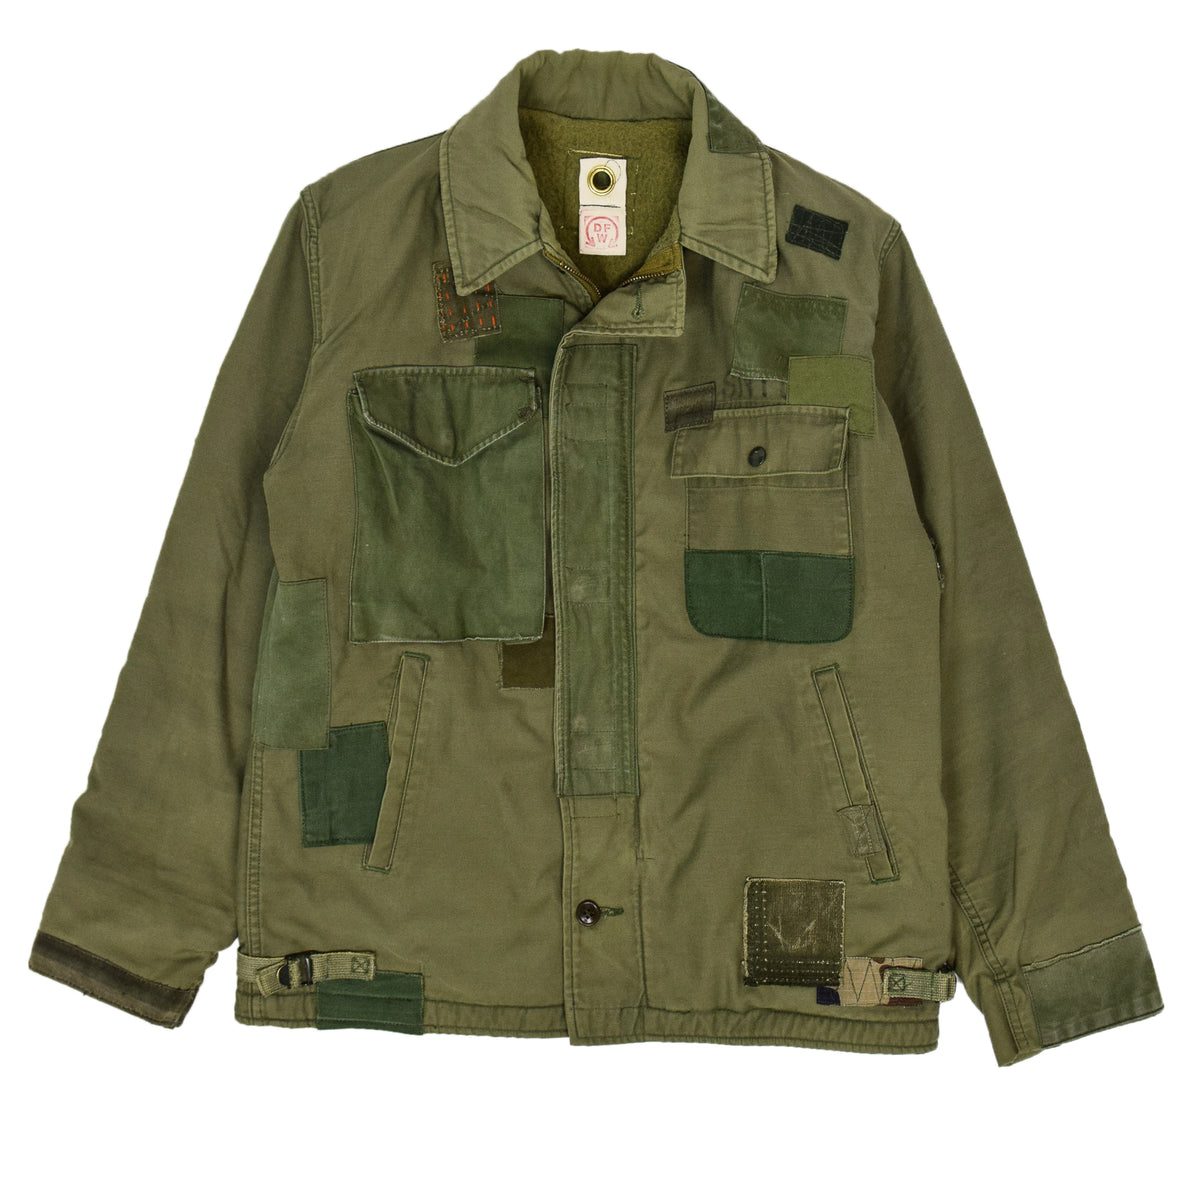 Vintage 80s US Military Darned Fine Reworked A-2 Deck Jacket M front